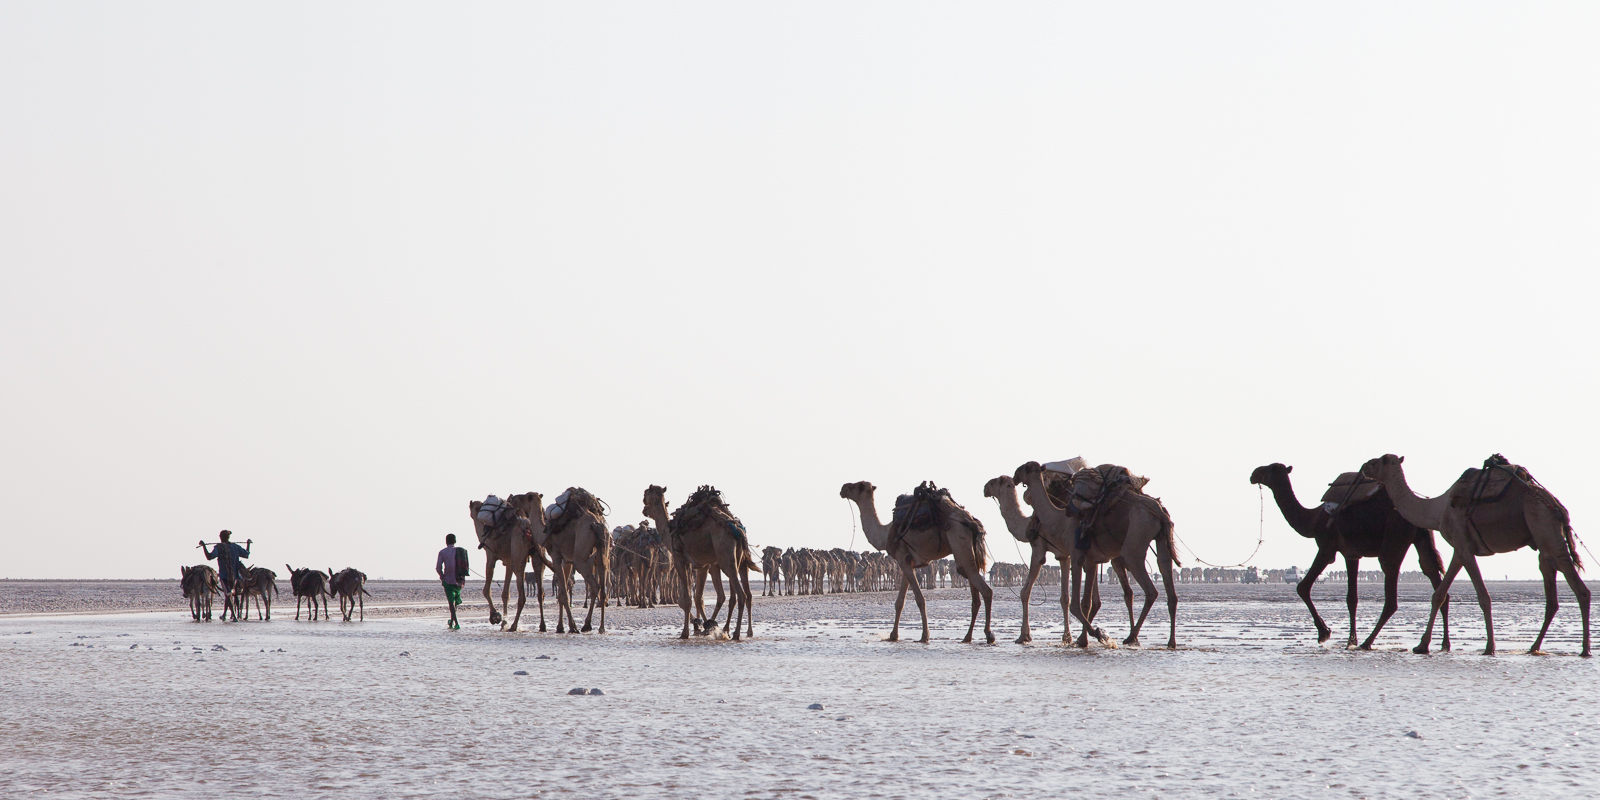 The daily camel train heading out to the salt flats to pick up their cargo of white gold. [Click to enlarge!]